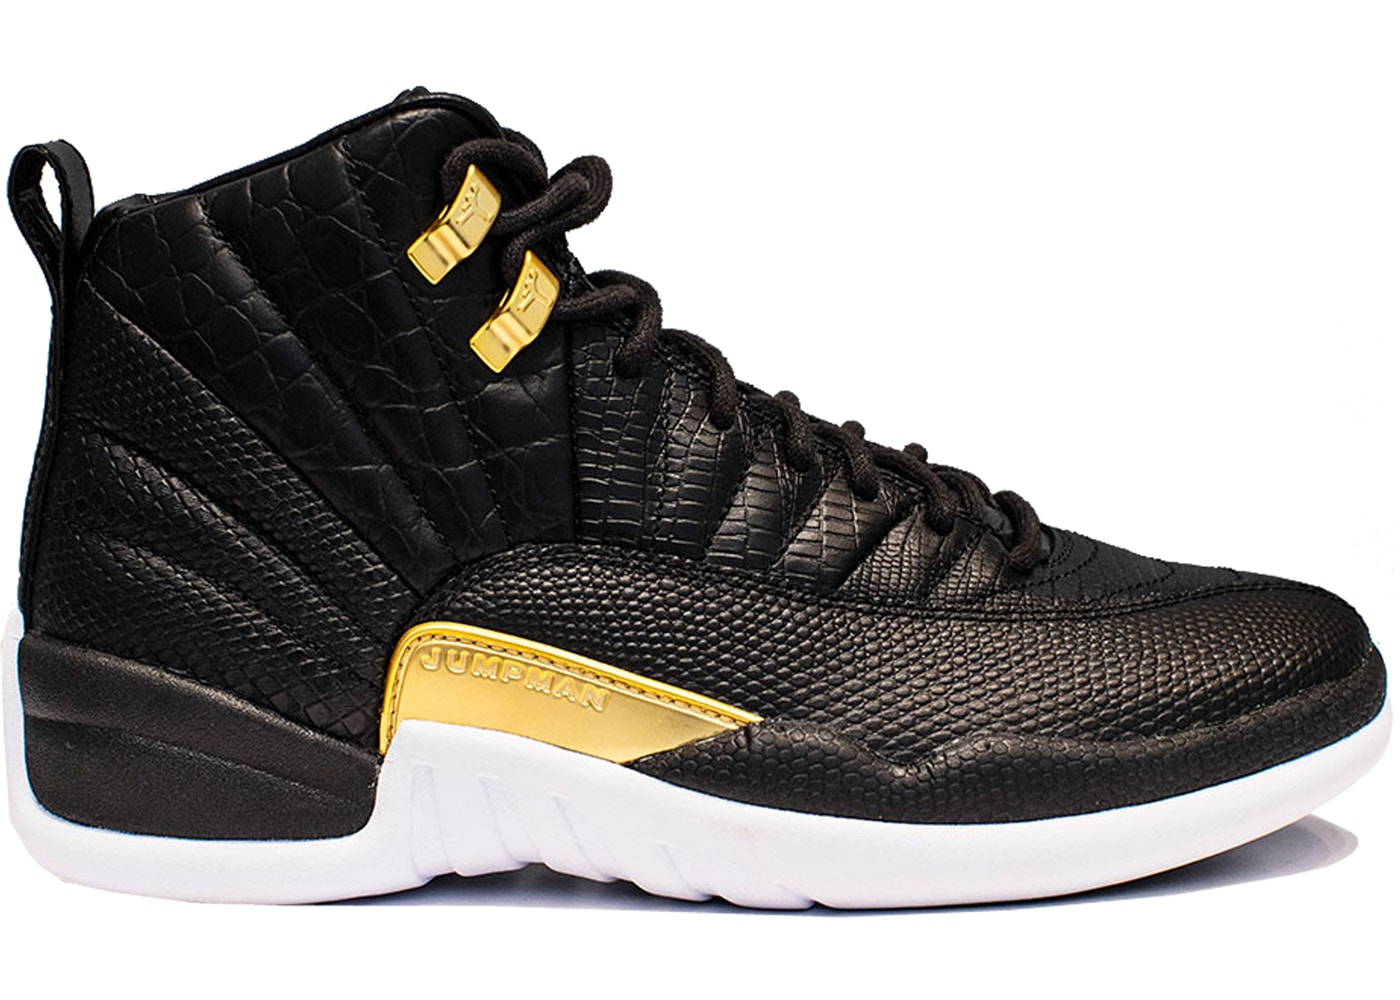 new product 59200 e1dad Now Available: Air Jordan 12 Retro W